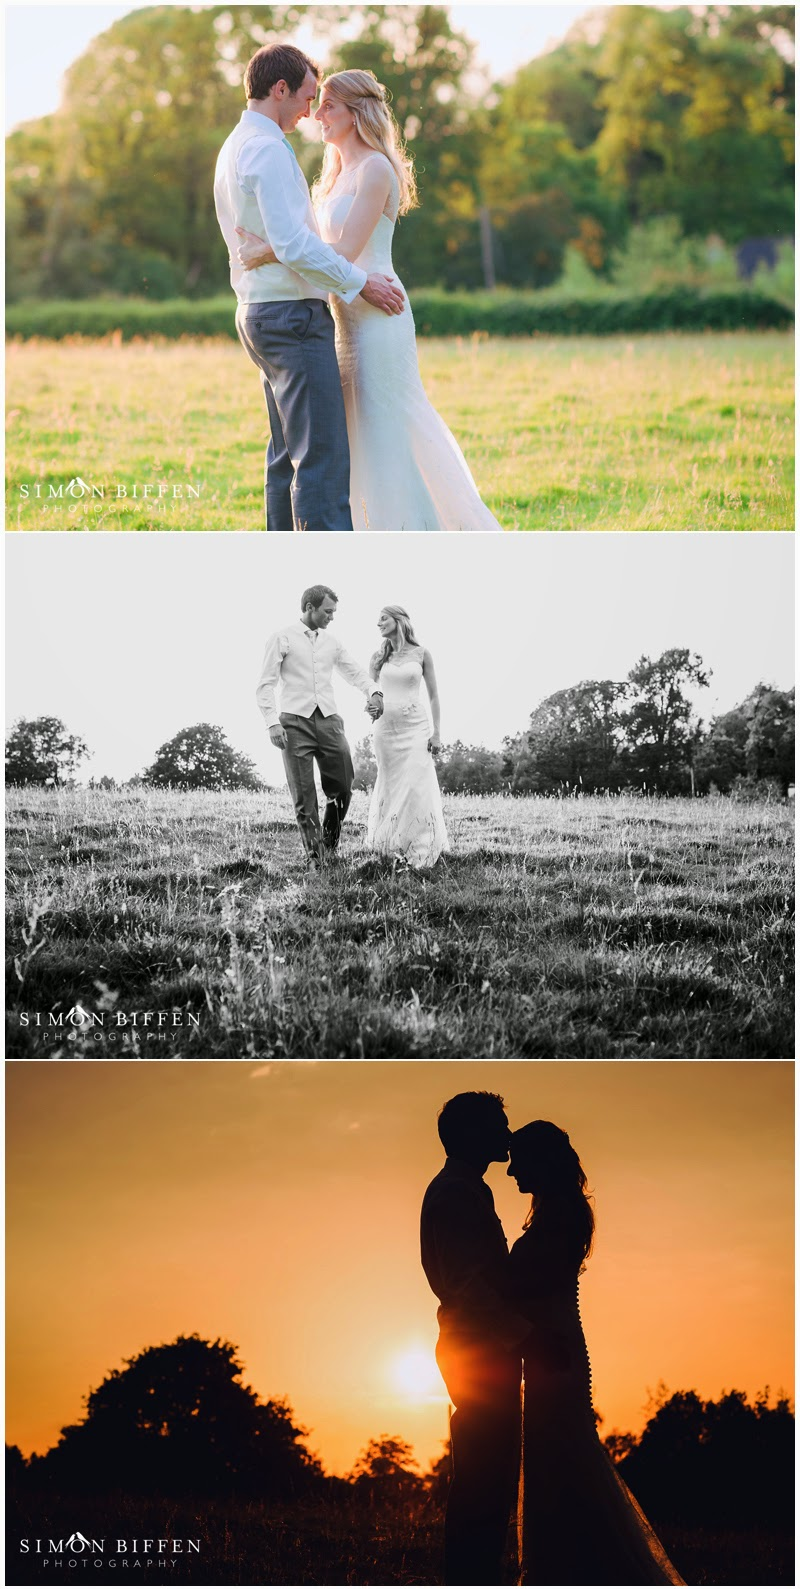 Dusk wedding photos with bride and groom in Somerset